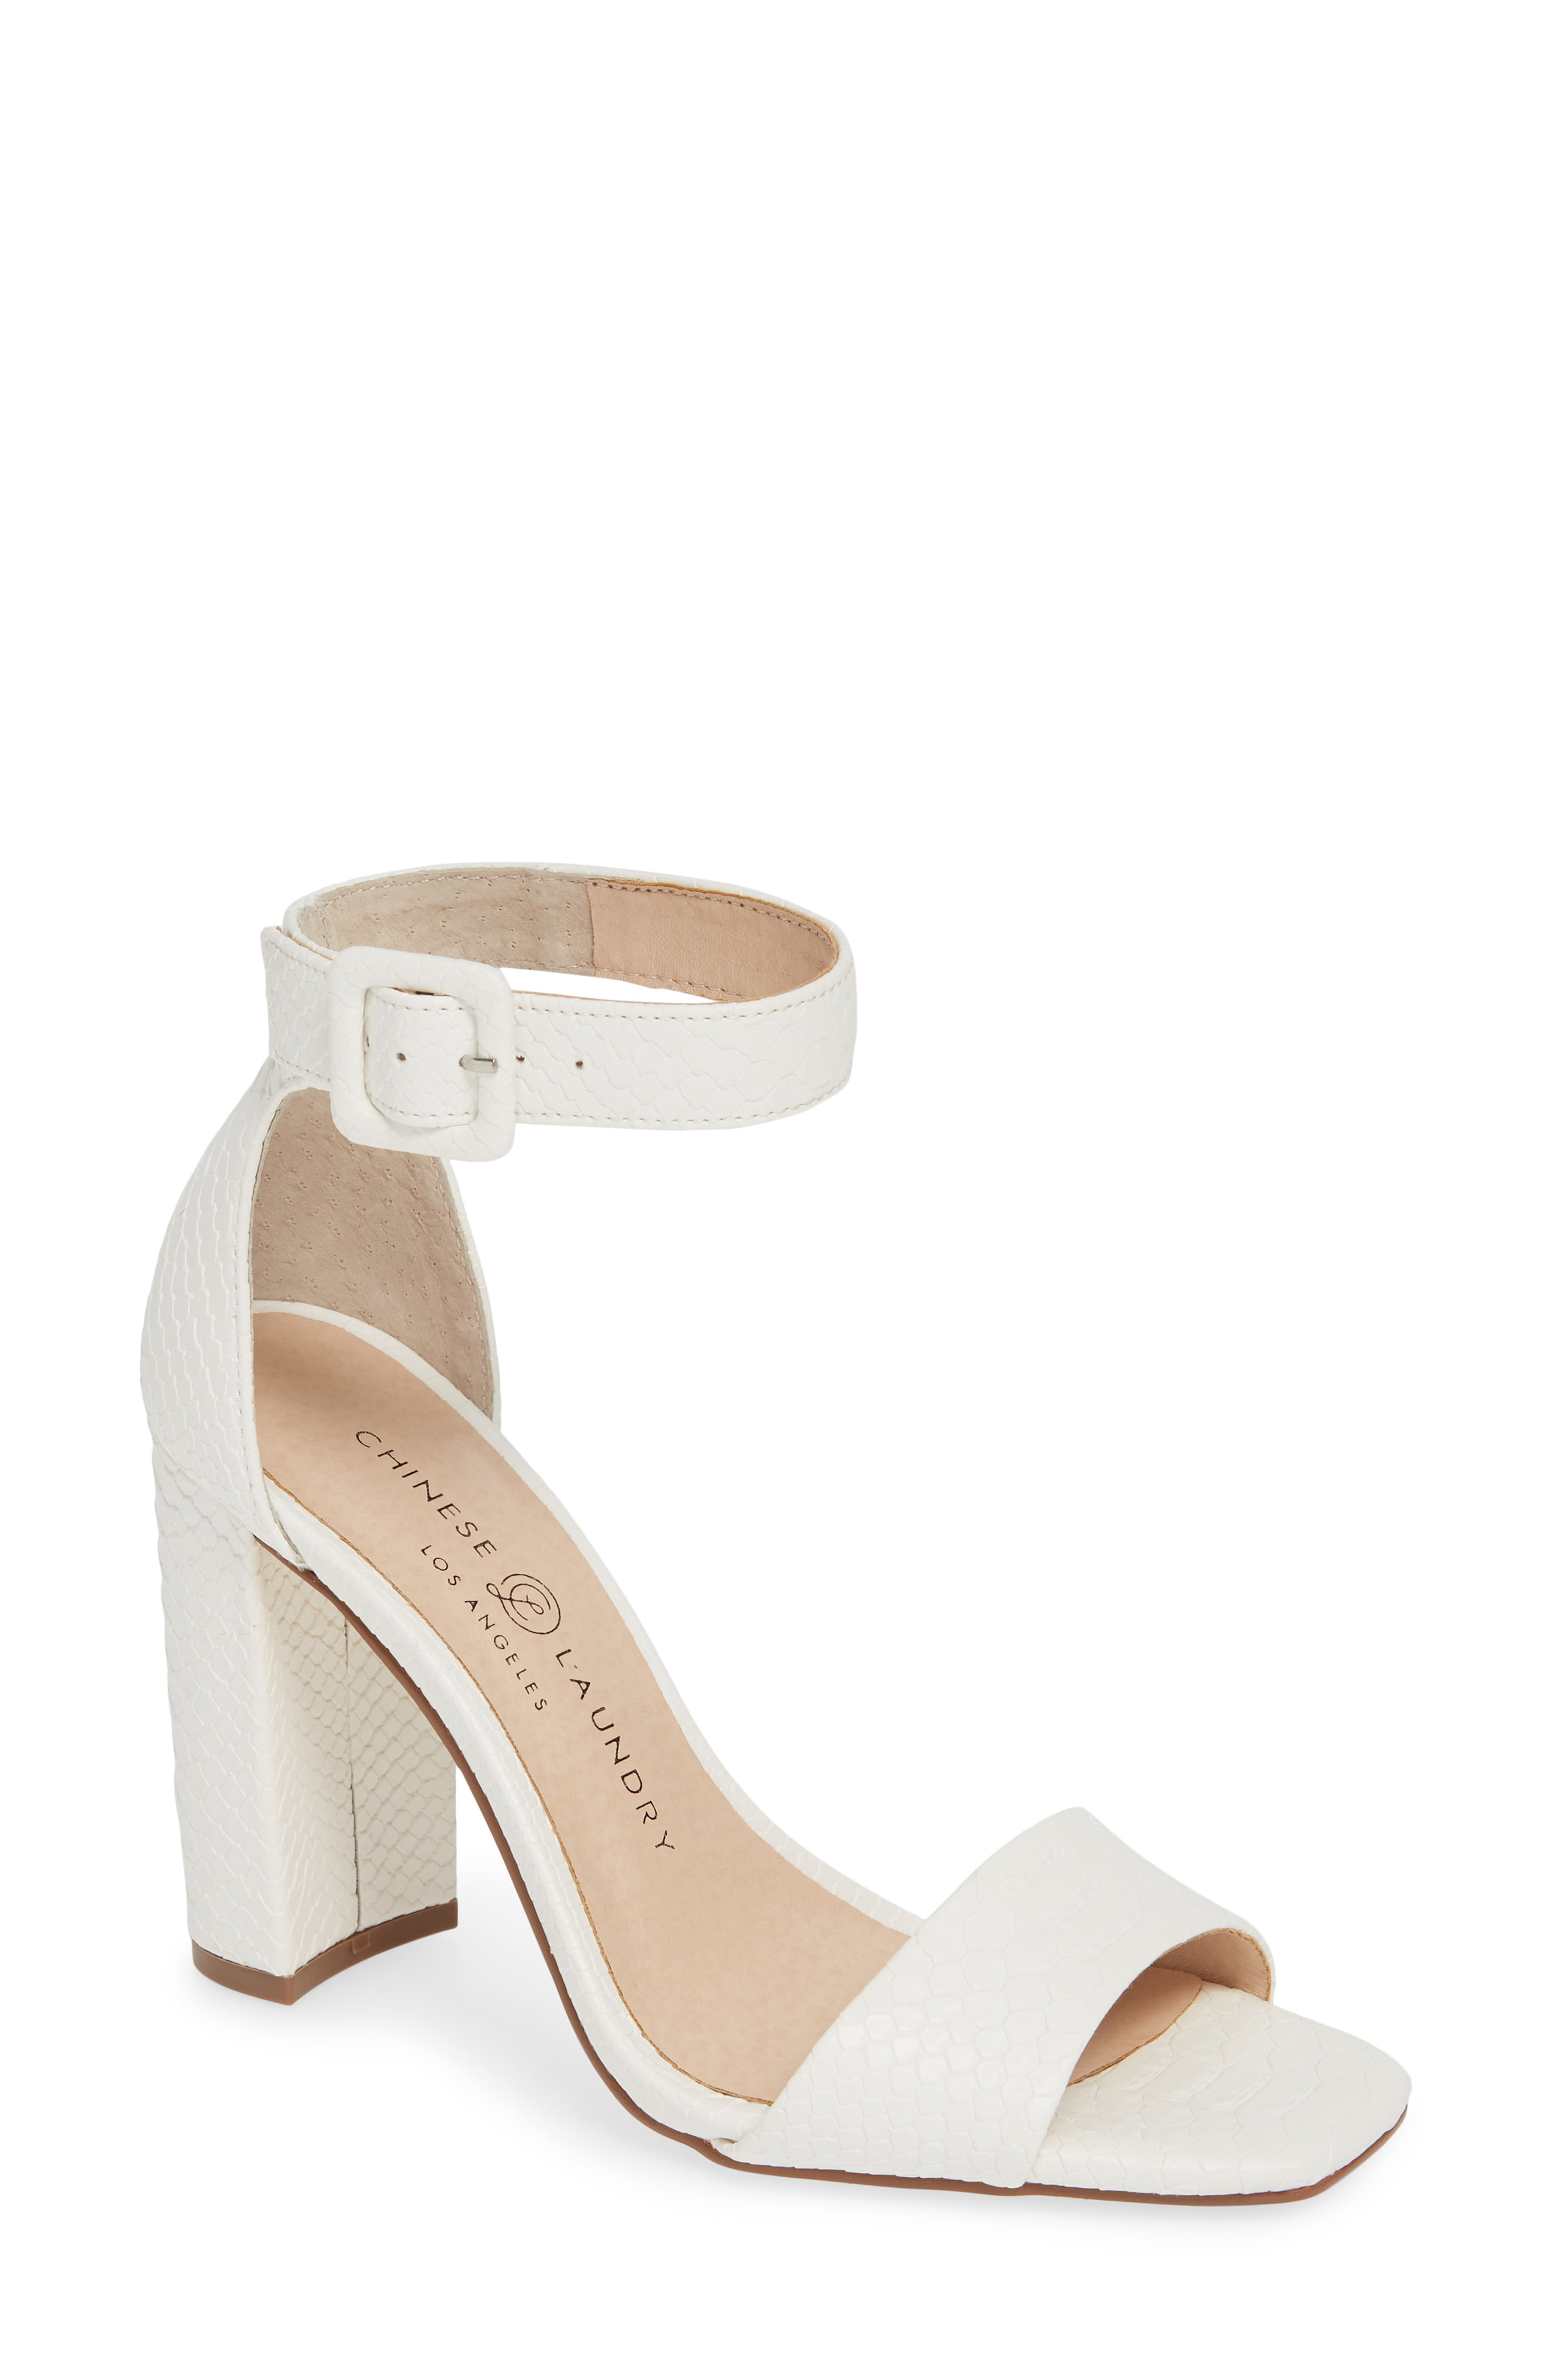 Chinese Laundry Jettie Sandal Women Embellished Sandals